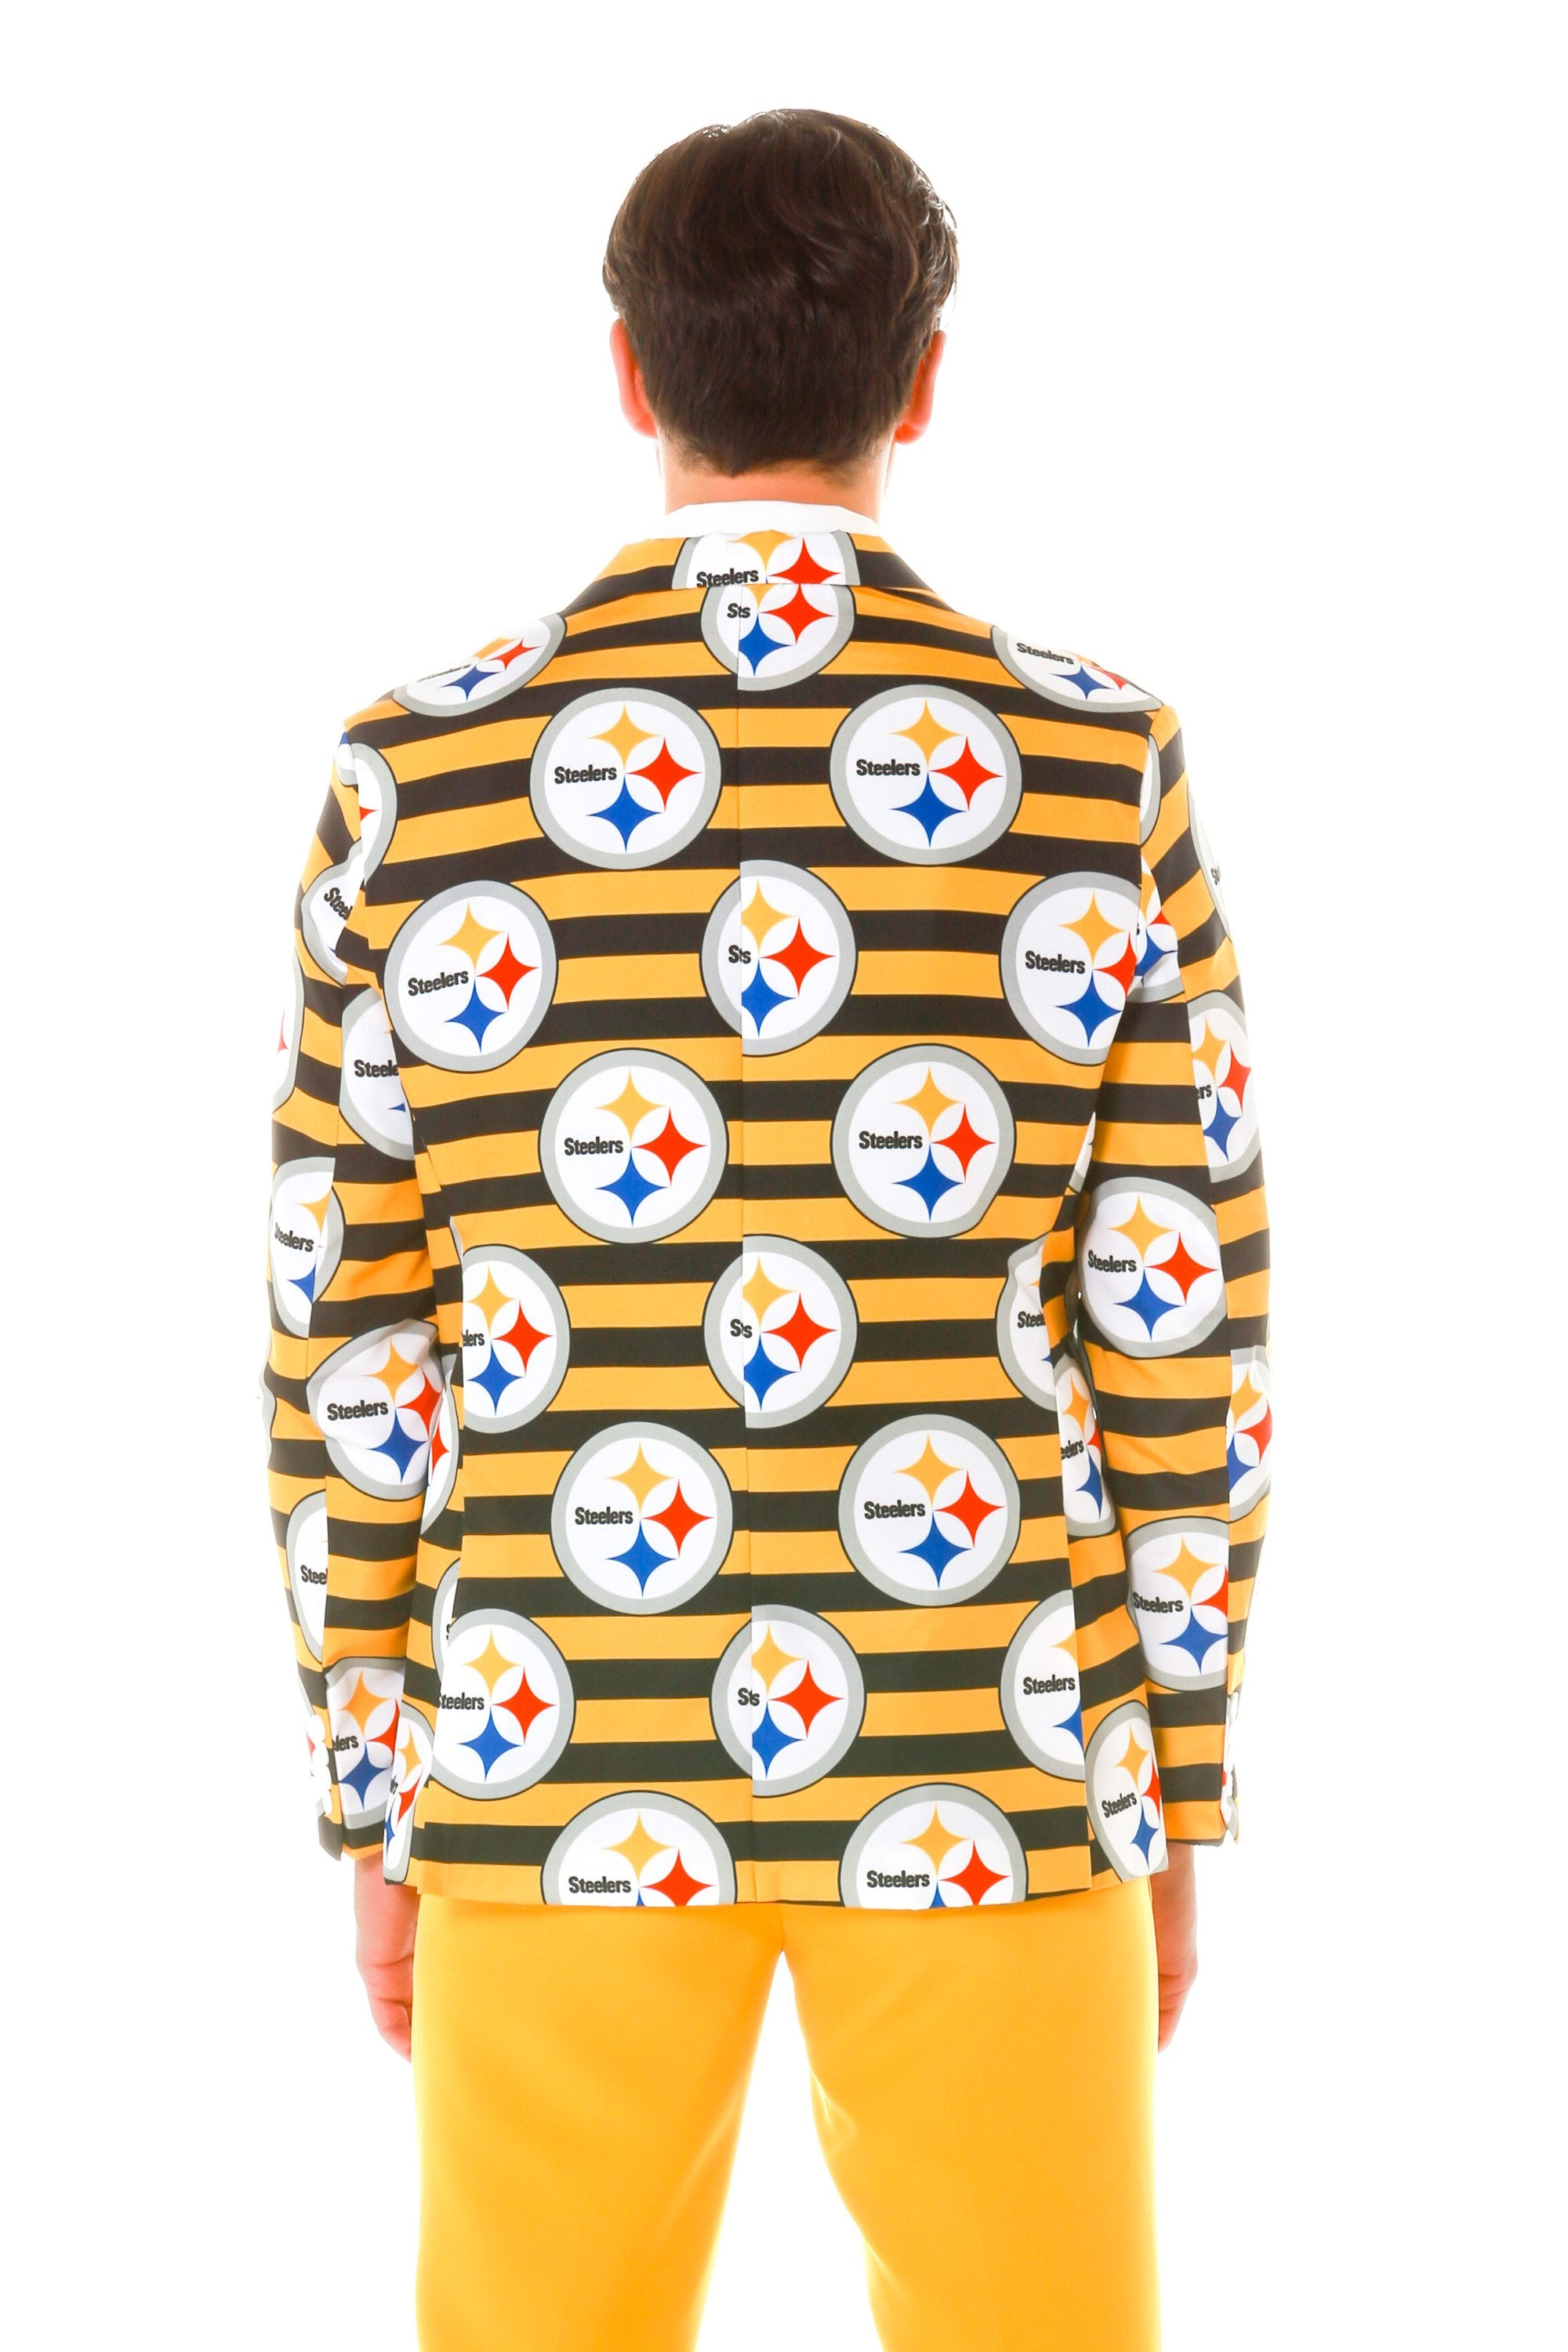 Pittsburgh Steelers sport coat